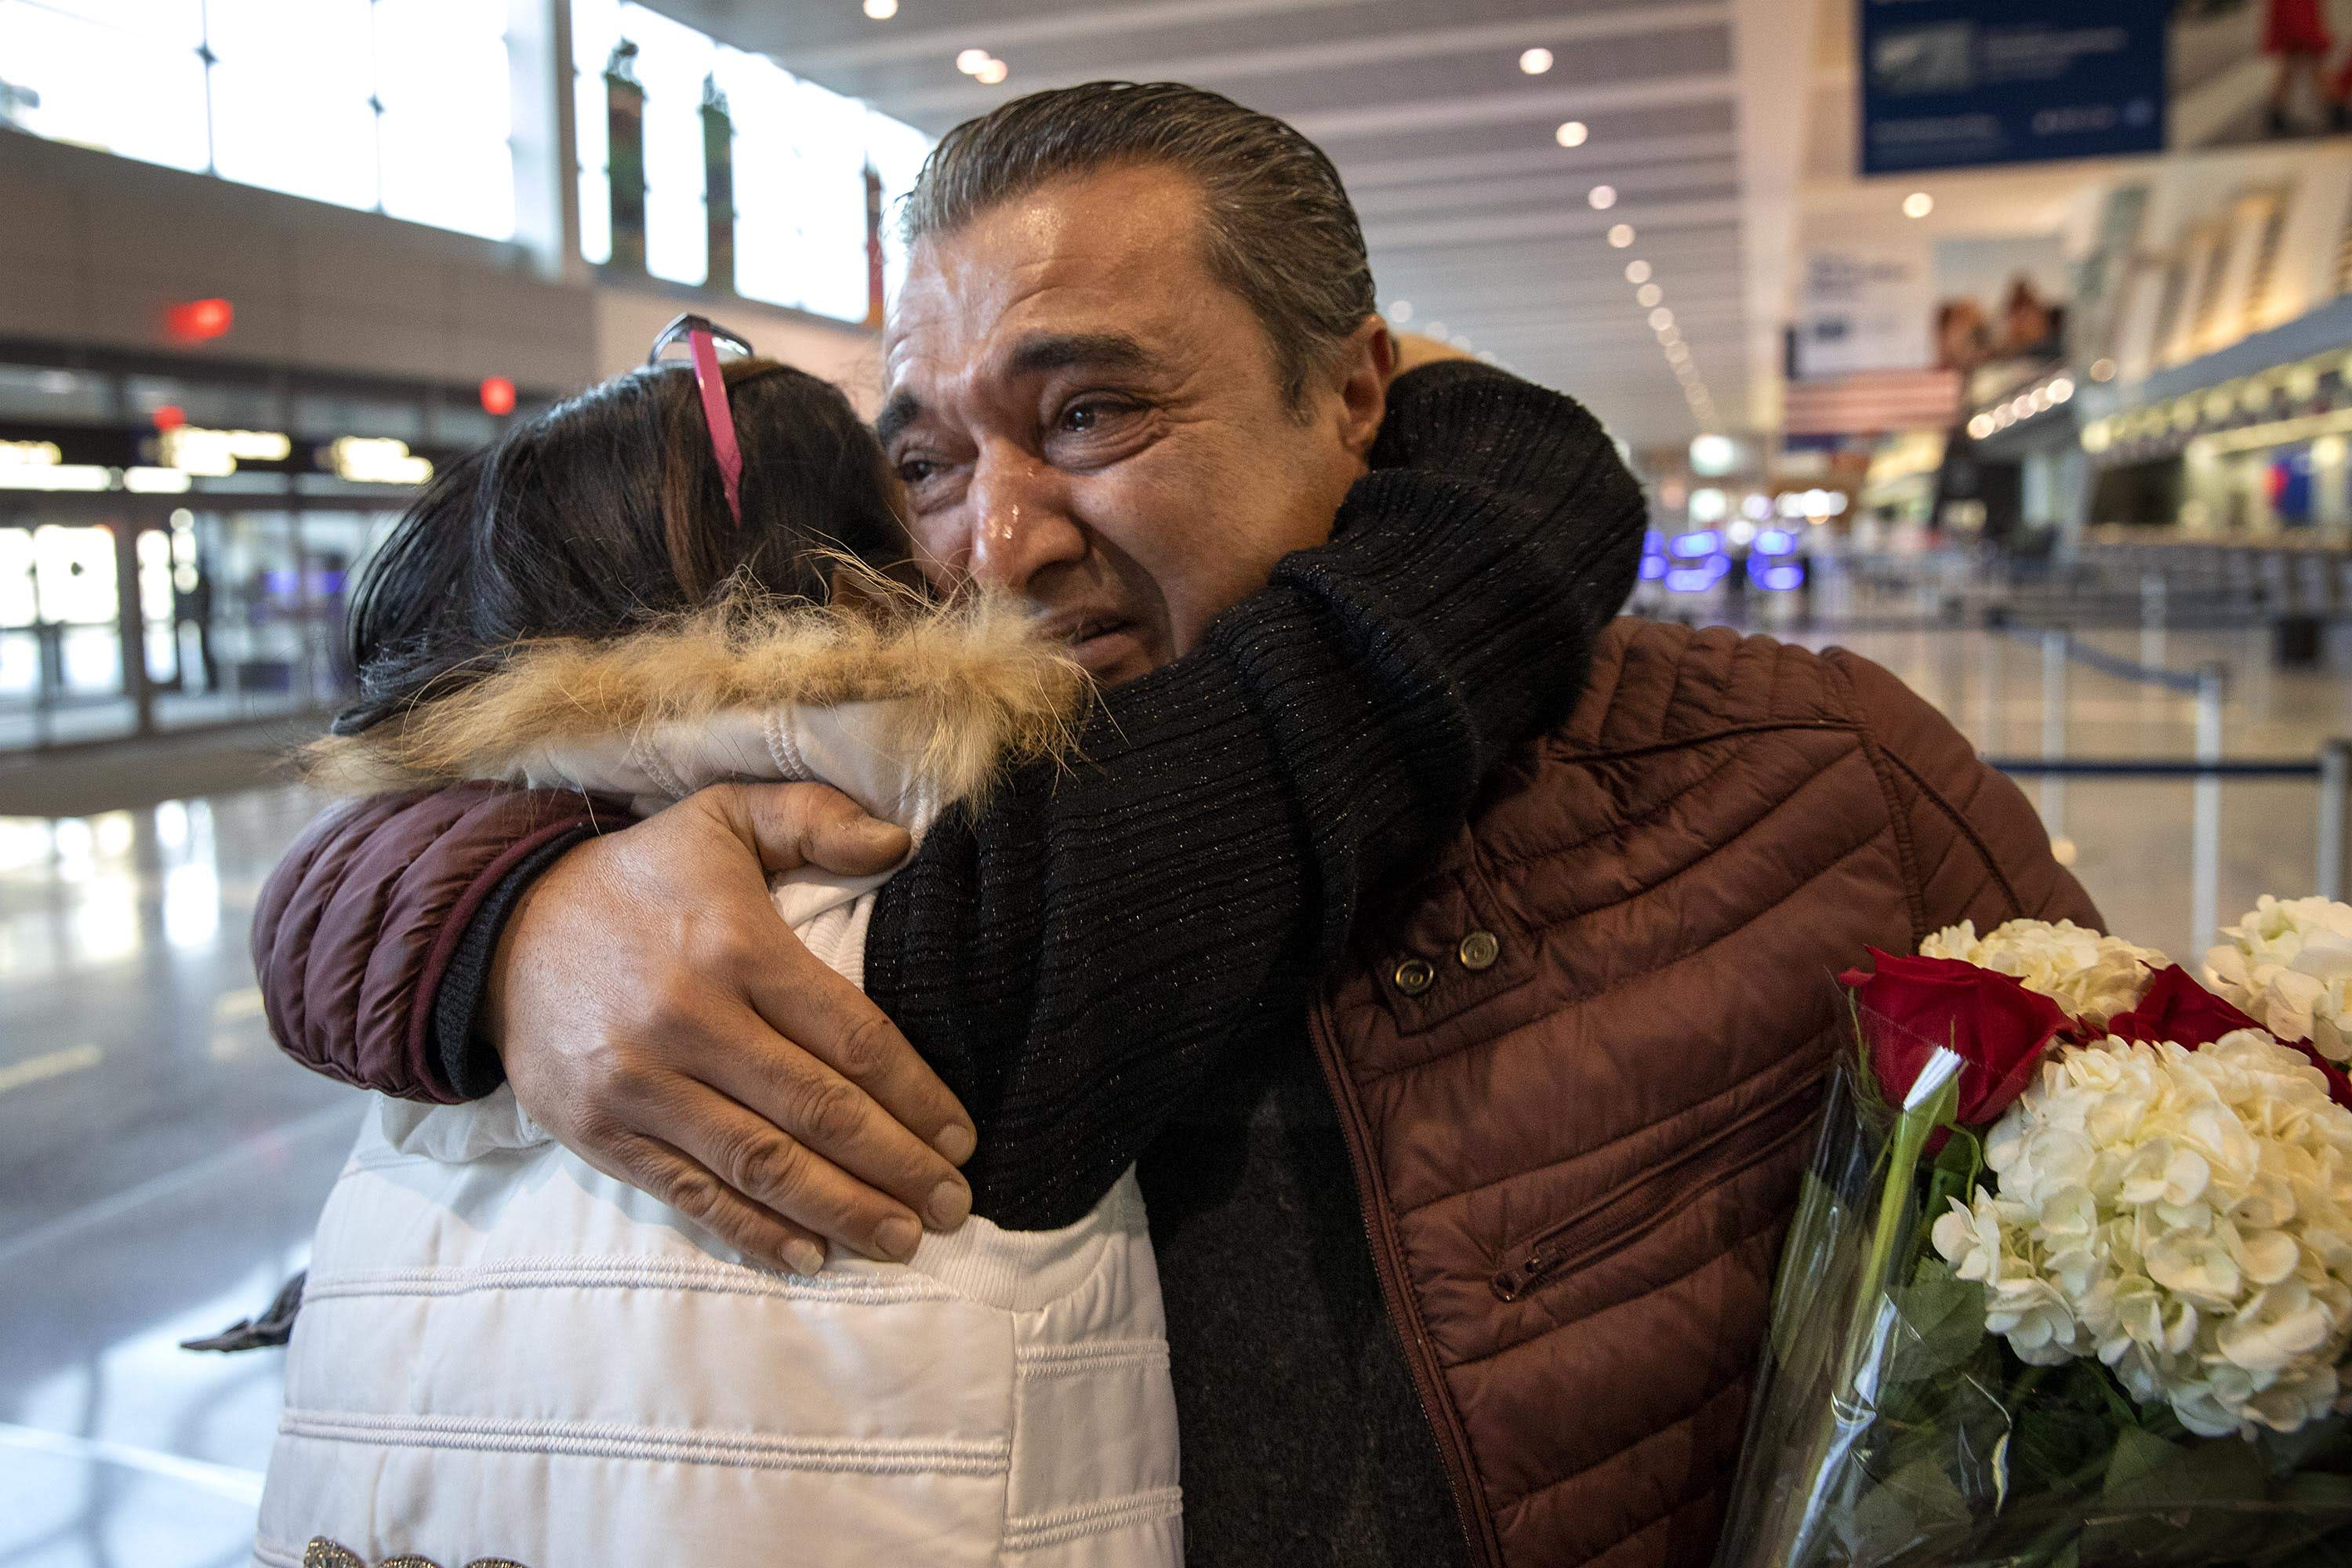 Alaa Issa hugs his sister Lina, as she and her family arrive at Logan Airport. (Robin Lubbock/WBUR)